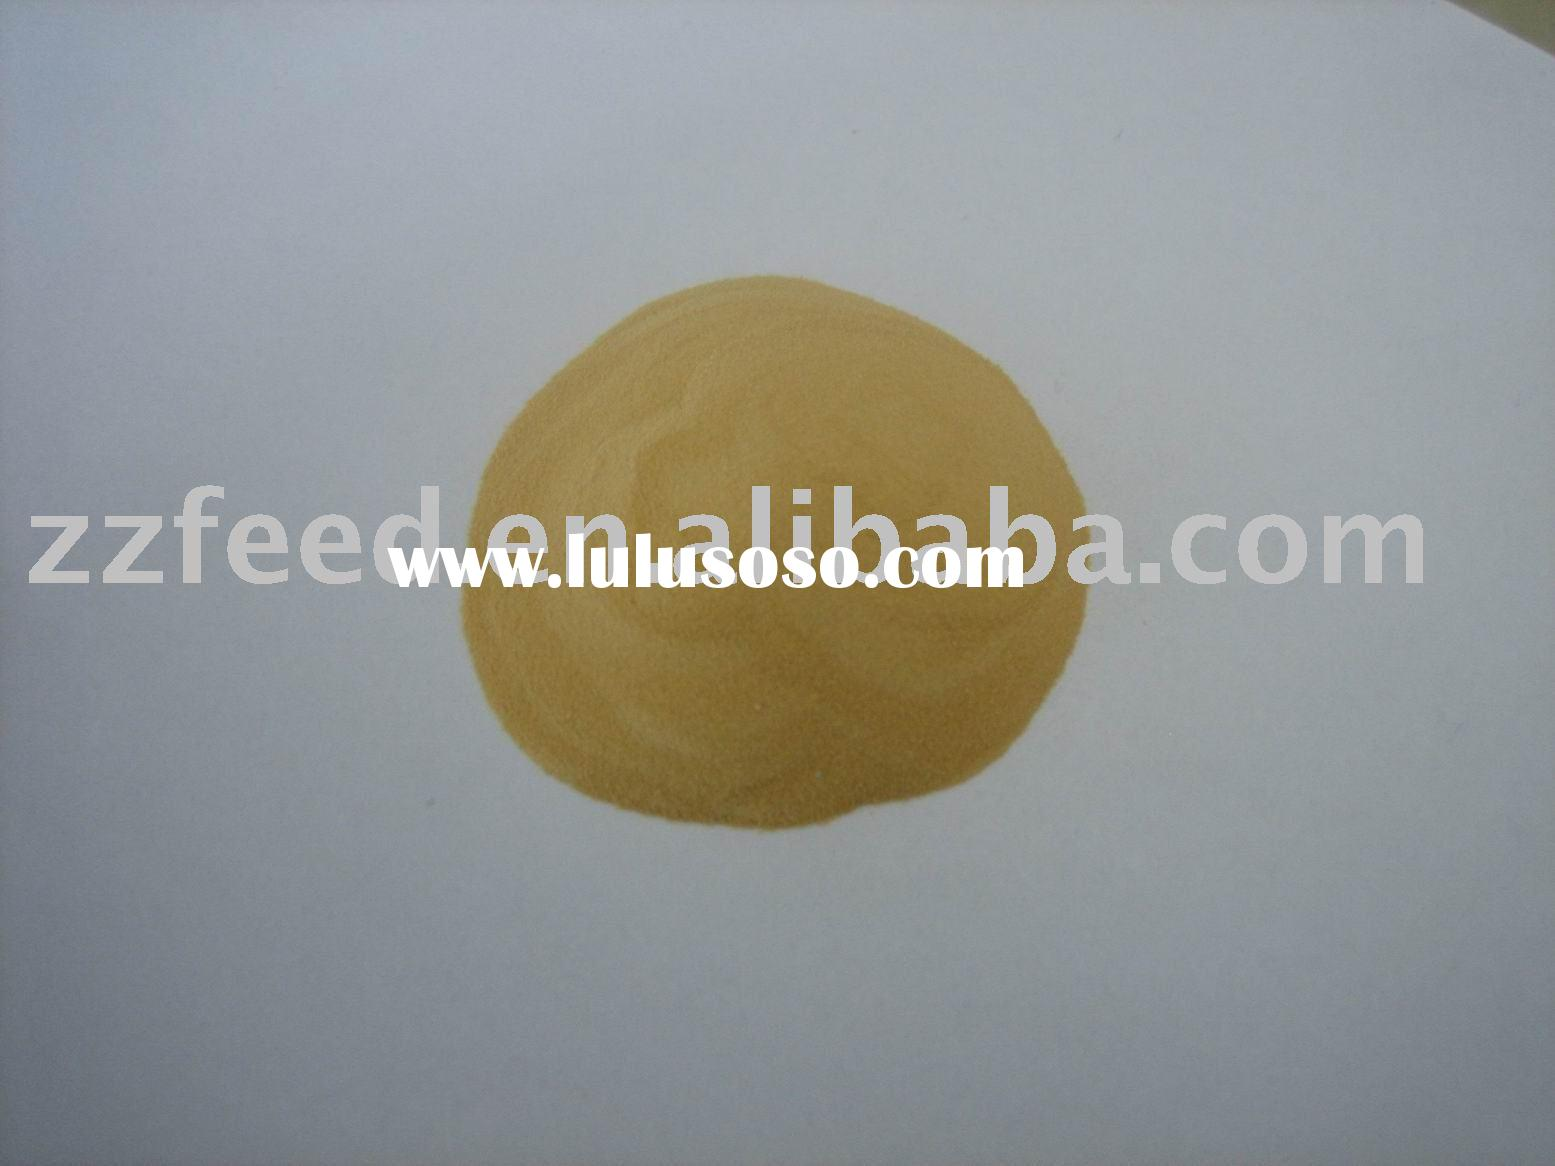 Feed yeast extract powder